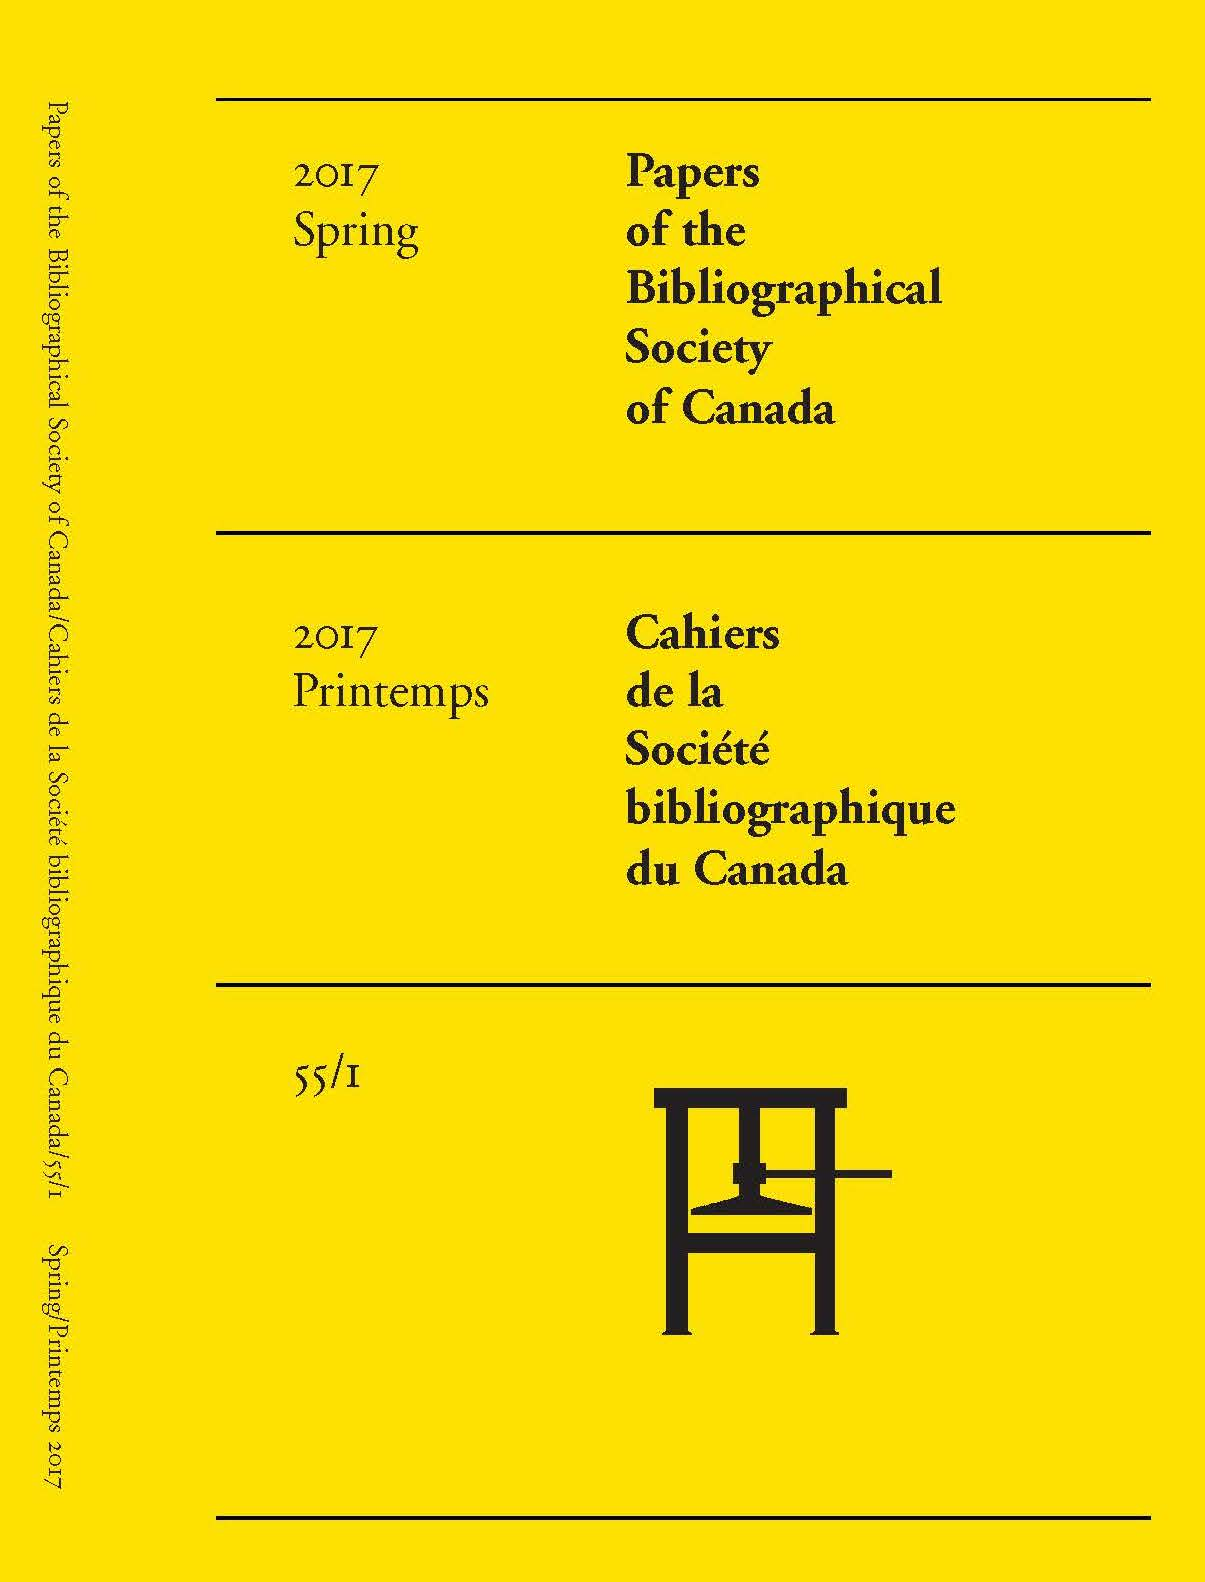 Cover - Vol 55, No 1 (2017) Papers of The Bibliographical Society of Canada